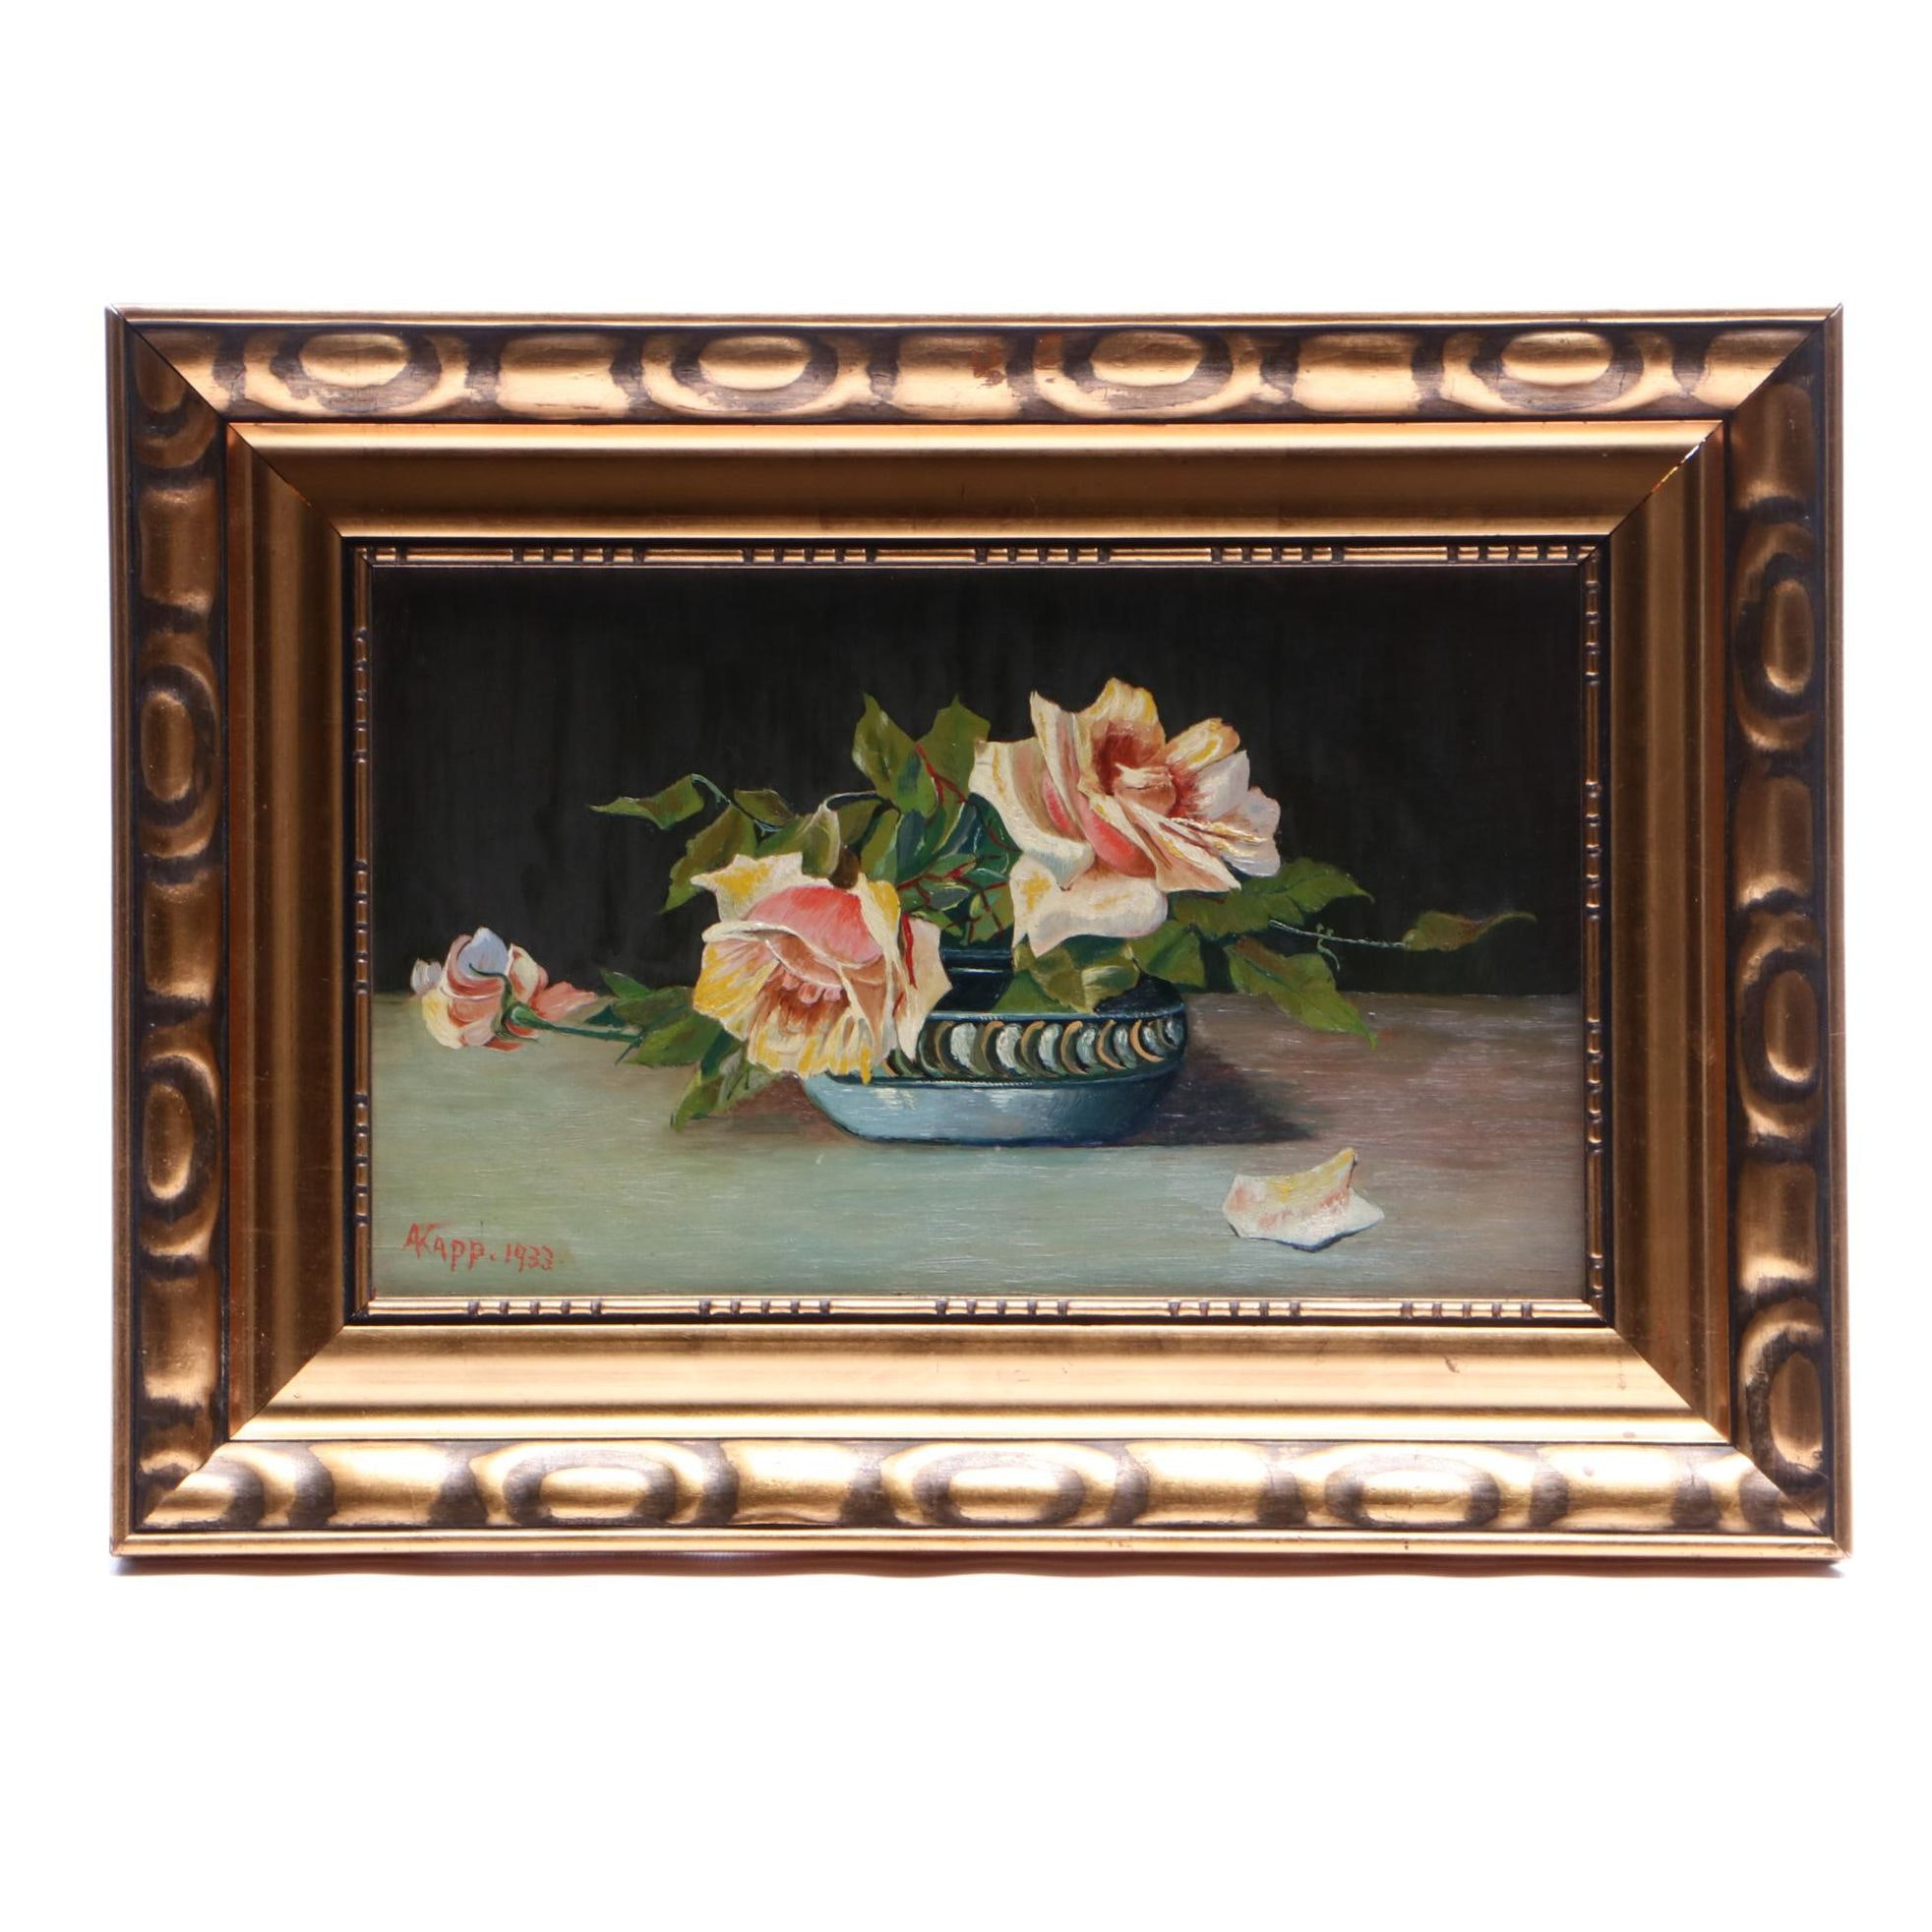 Alfred Kapp 1933 Floral Still Life Oil Painting